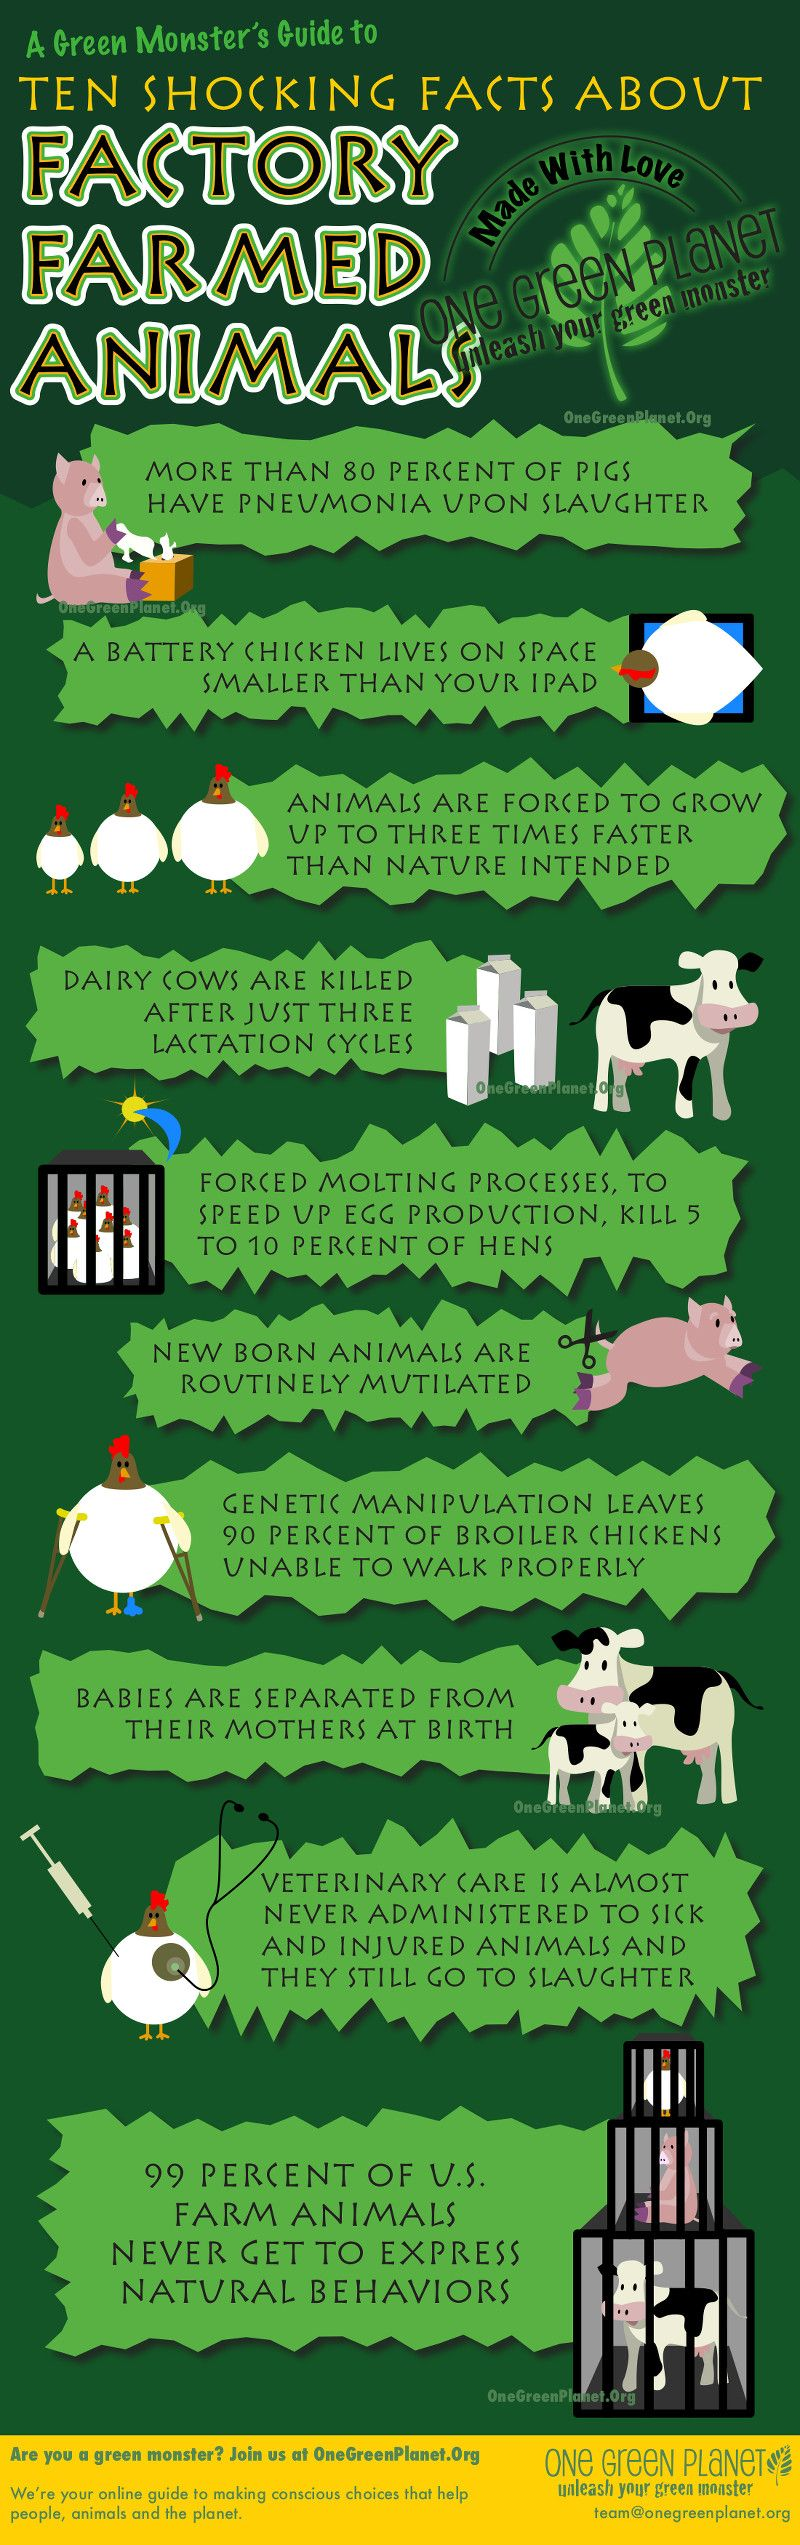 Shocking Facts About Factory Farmed Animals INFOGRAPHIC